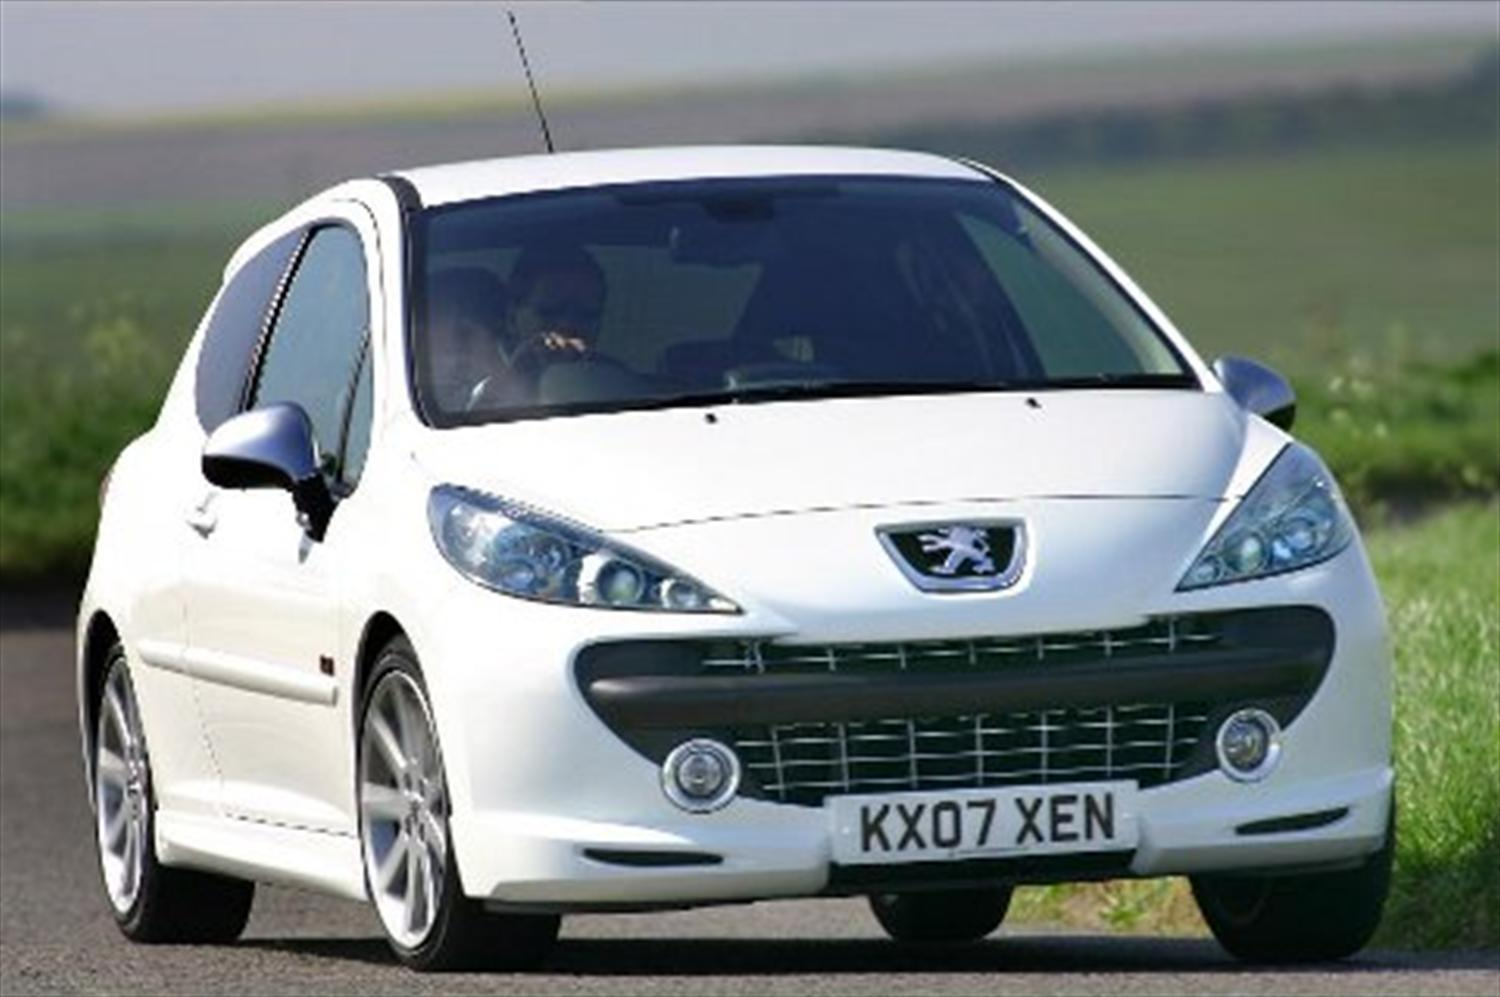 Peugeot Sales Boosted by Just Add Fuel Scheme